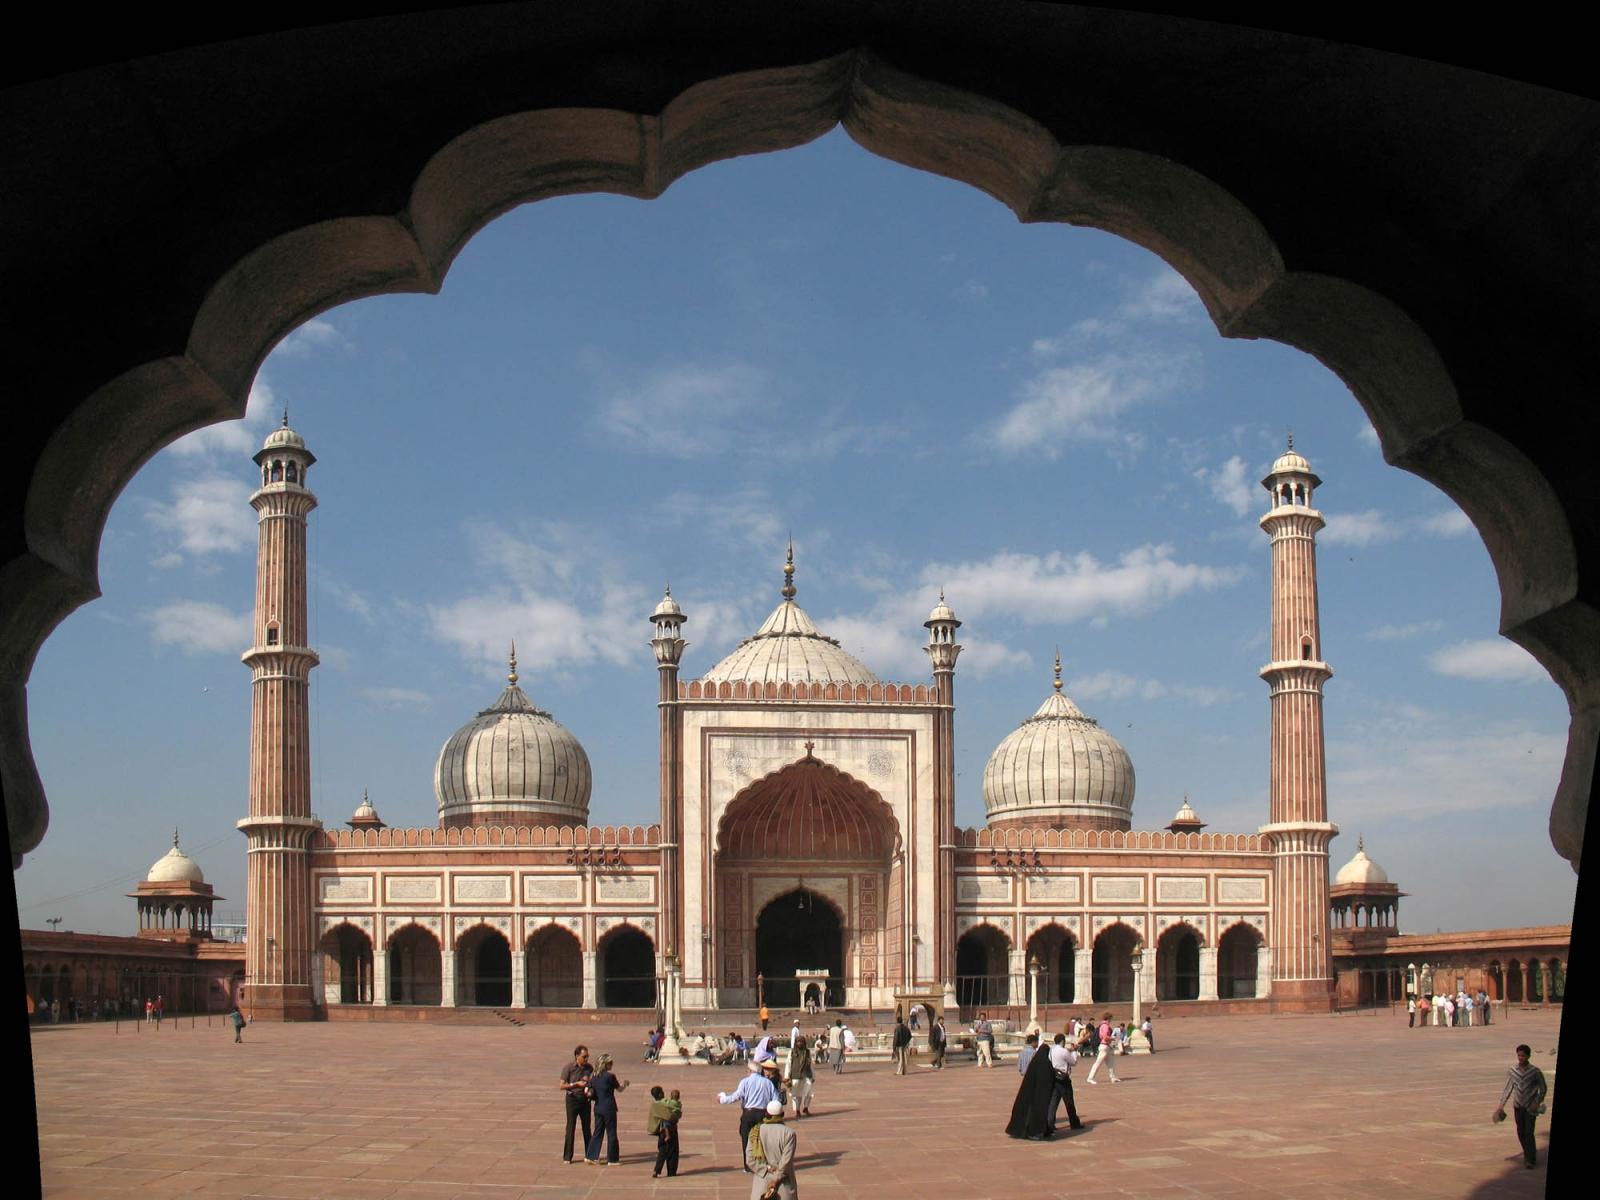 India Jama Mosque in New Delhi banita tour operator